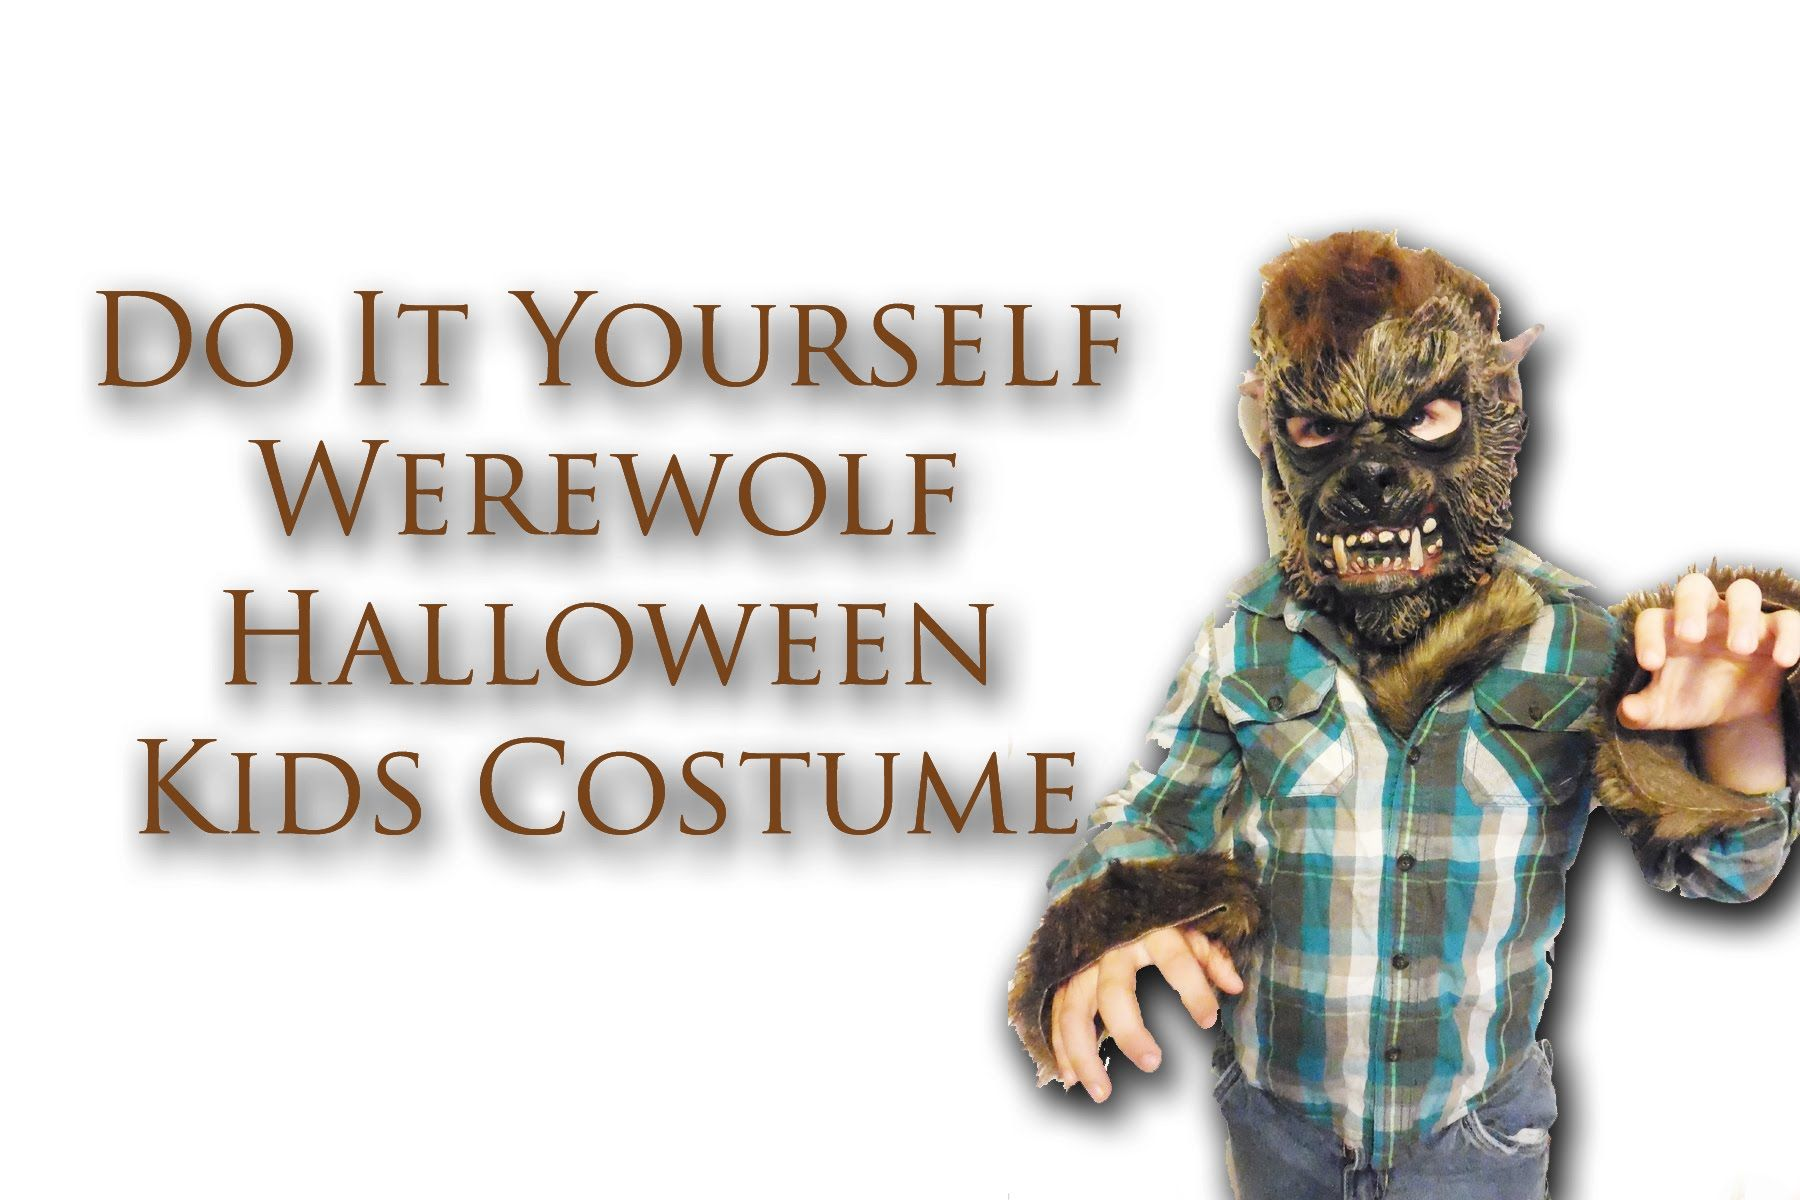 Diy easy kids werewolf costume stop the pin sanity tis the diy easy kids werewolf costume stop the pin sanity solutioingenieria Image collections